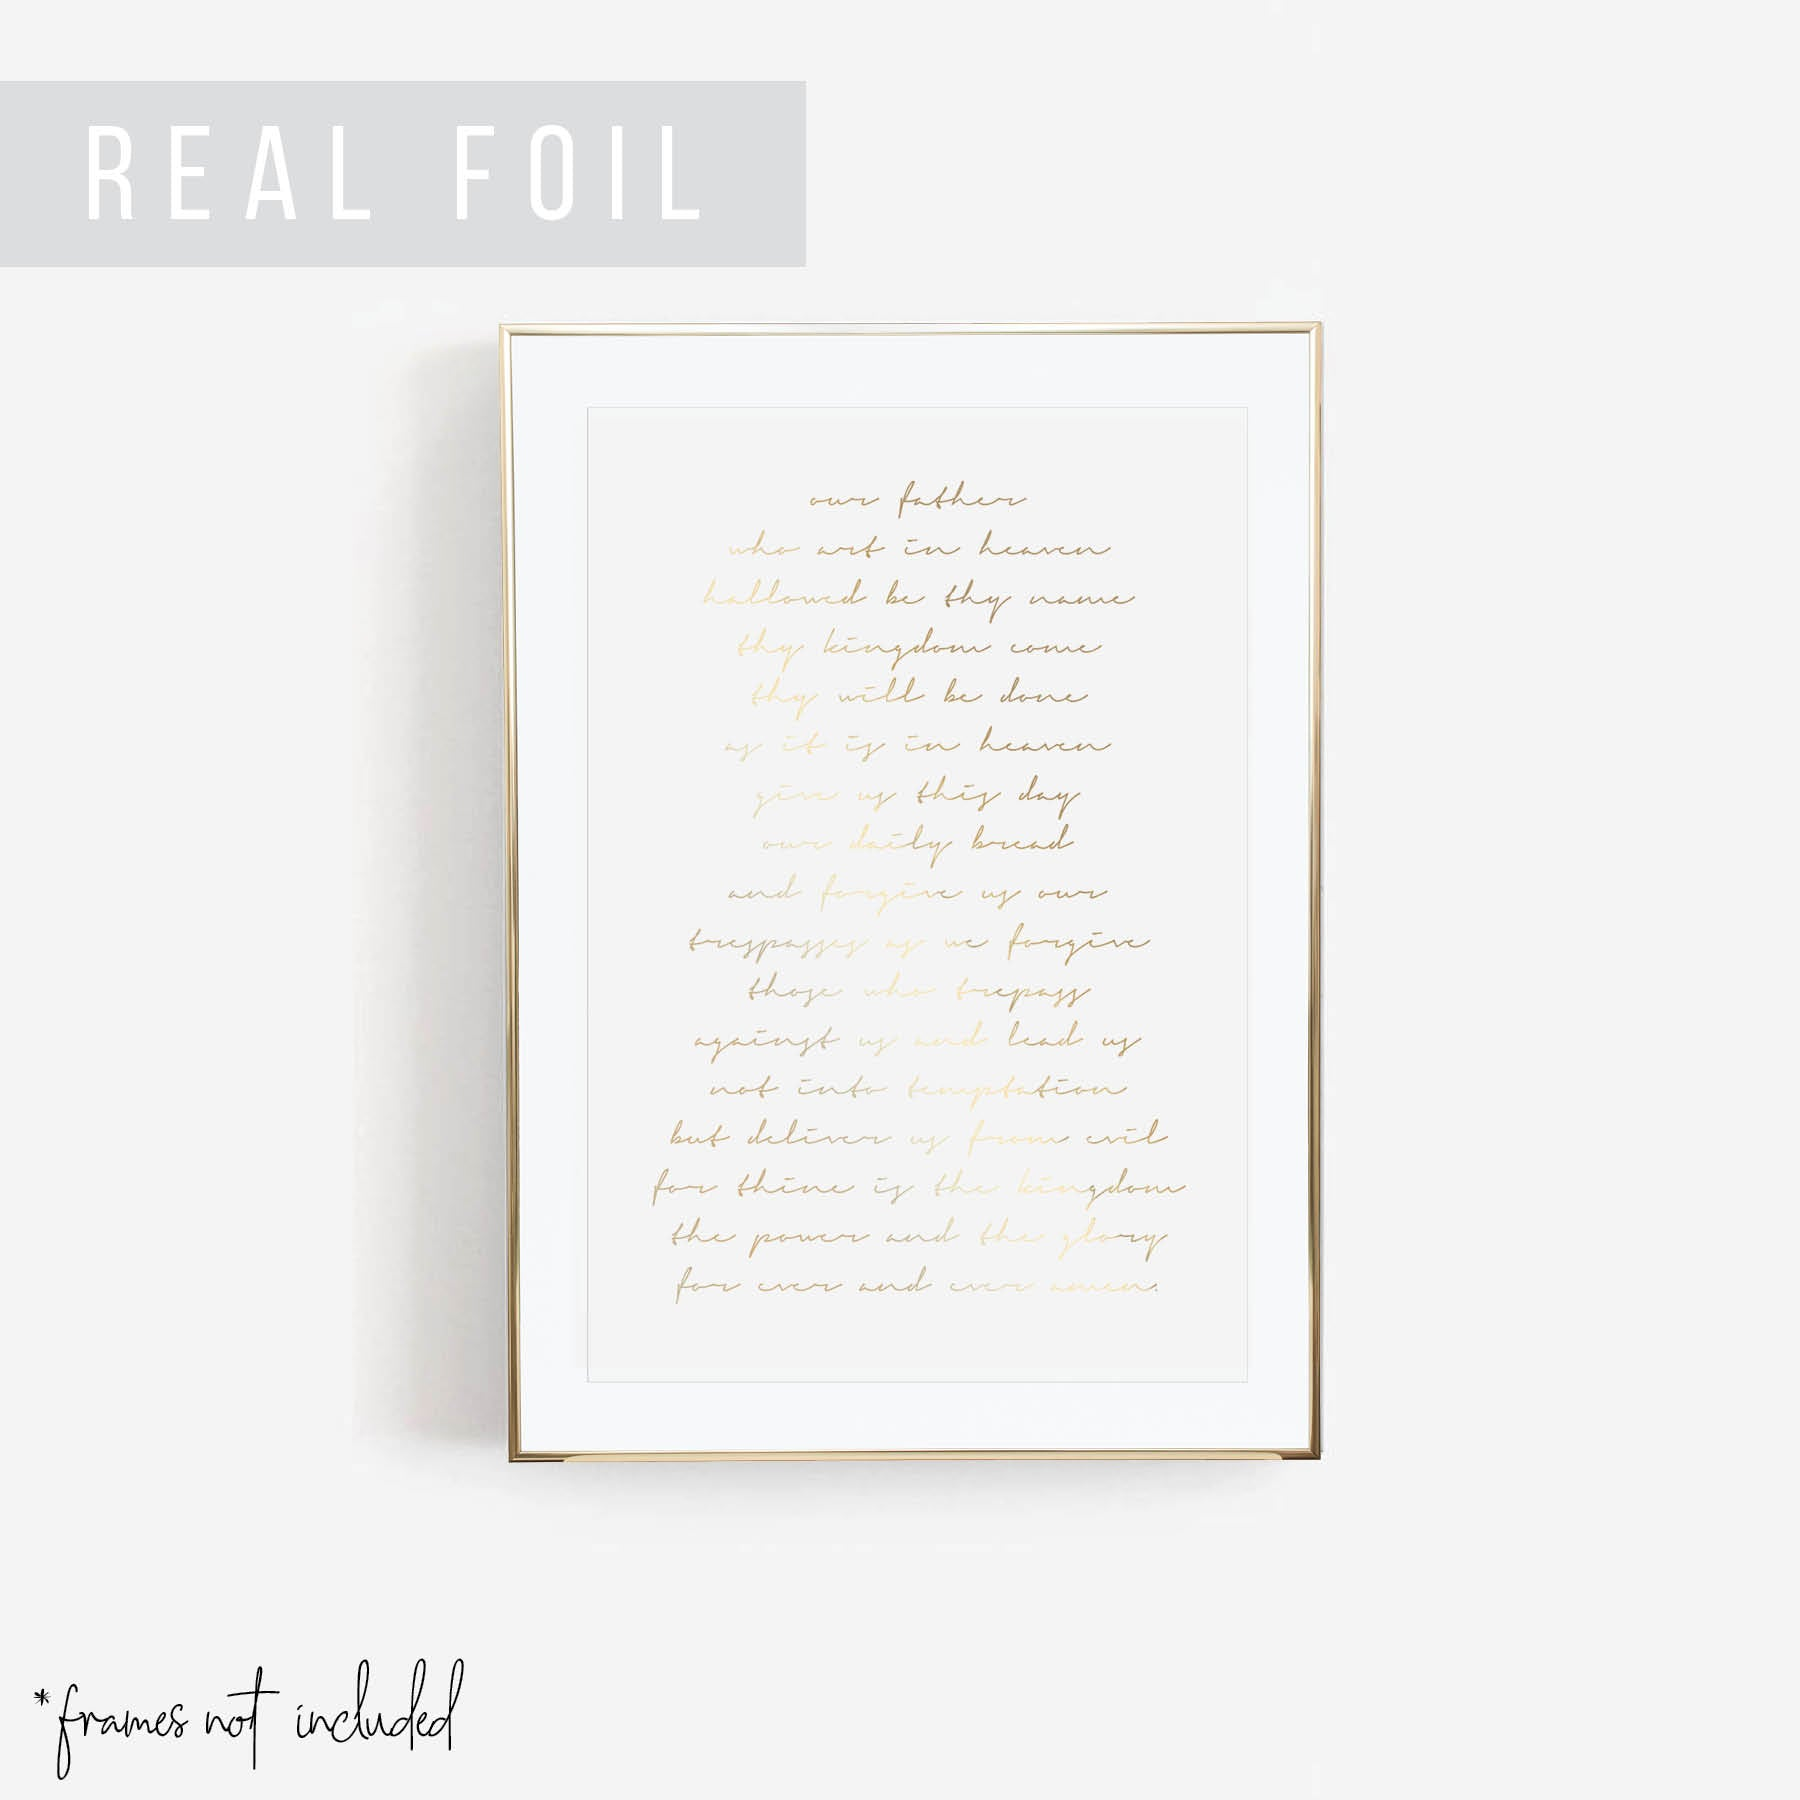 Our Father Who Art In Heaven Hallowed Be Thy Name ... The Lord's Prayer Script Foiled Art Print